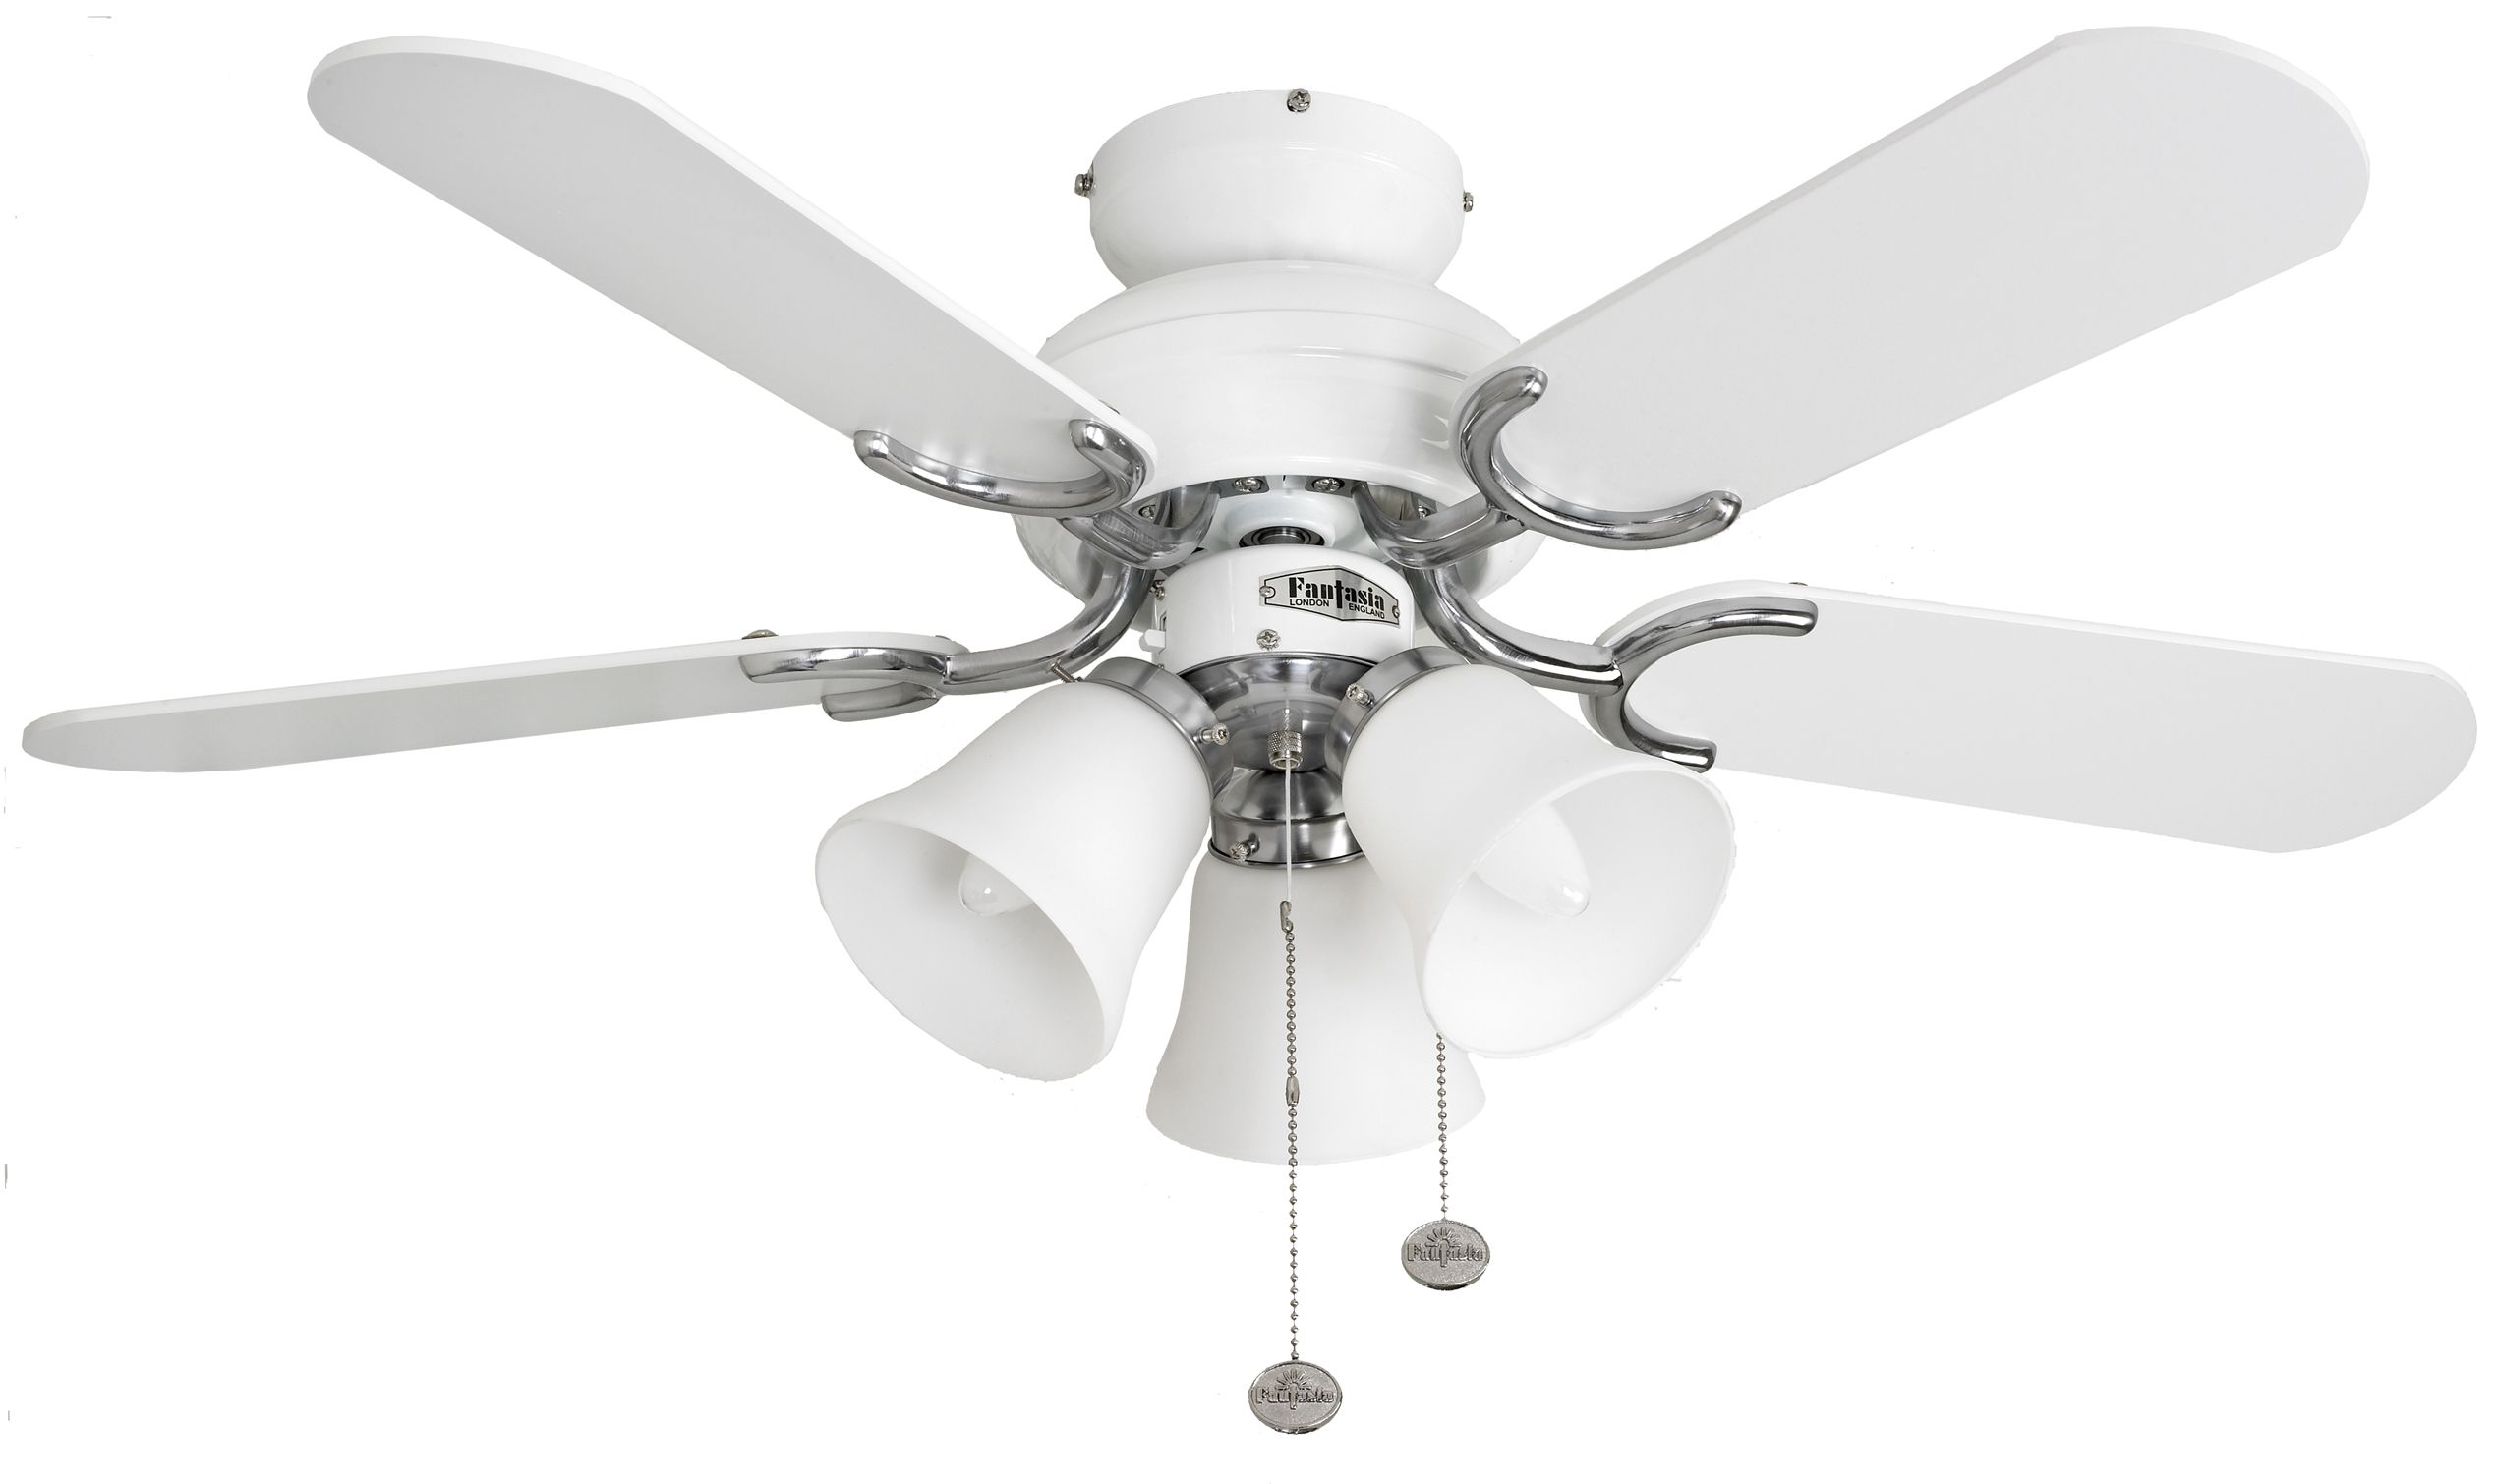 Fantasia Capri bi 36 White and Stainless Steel Ceiling Fan